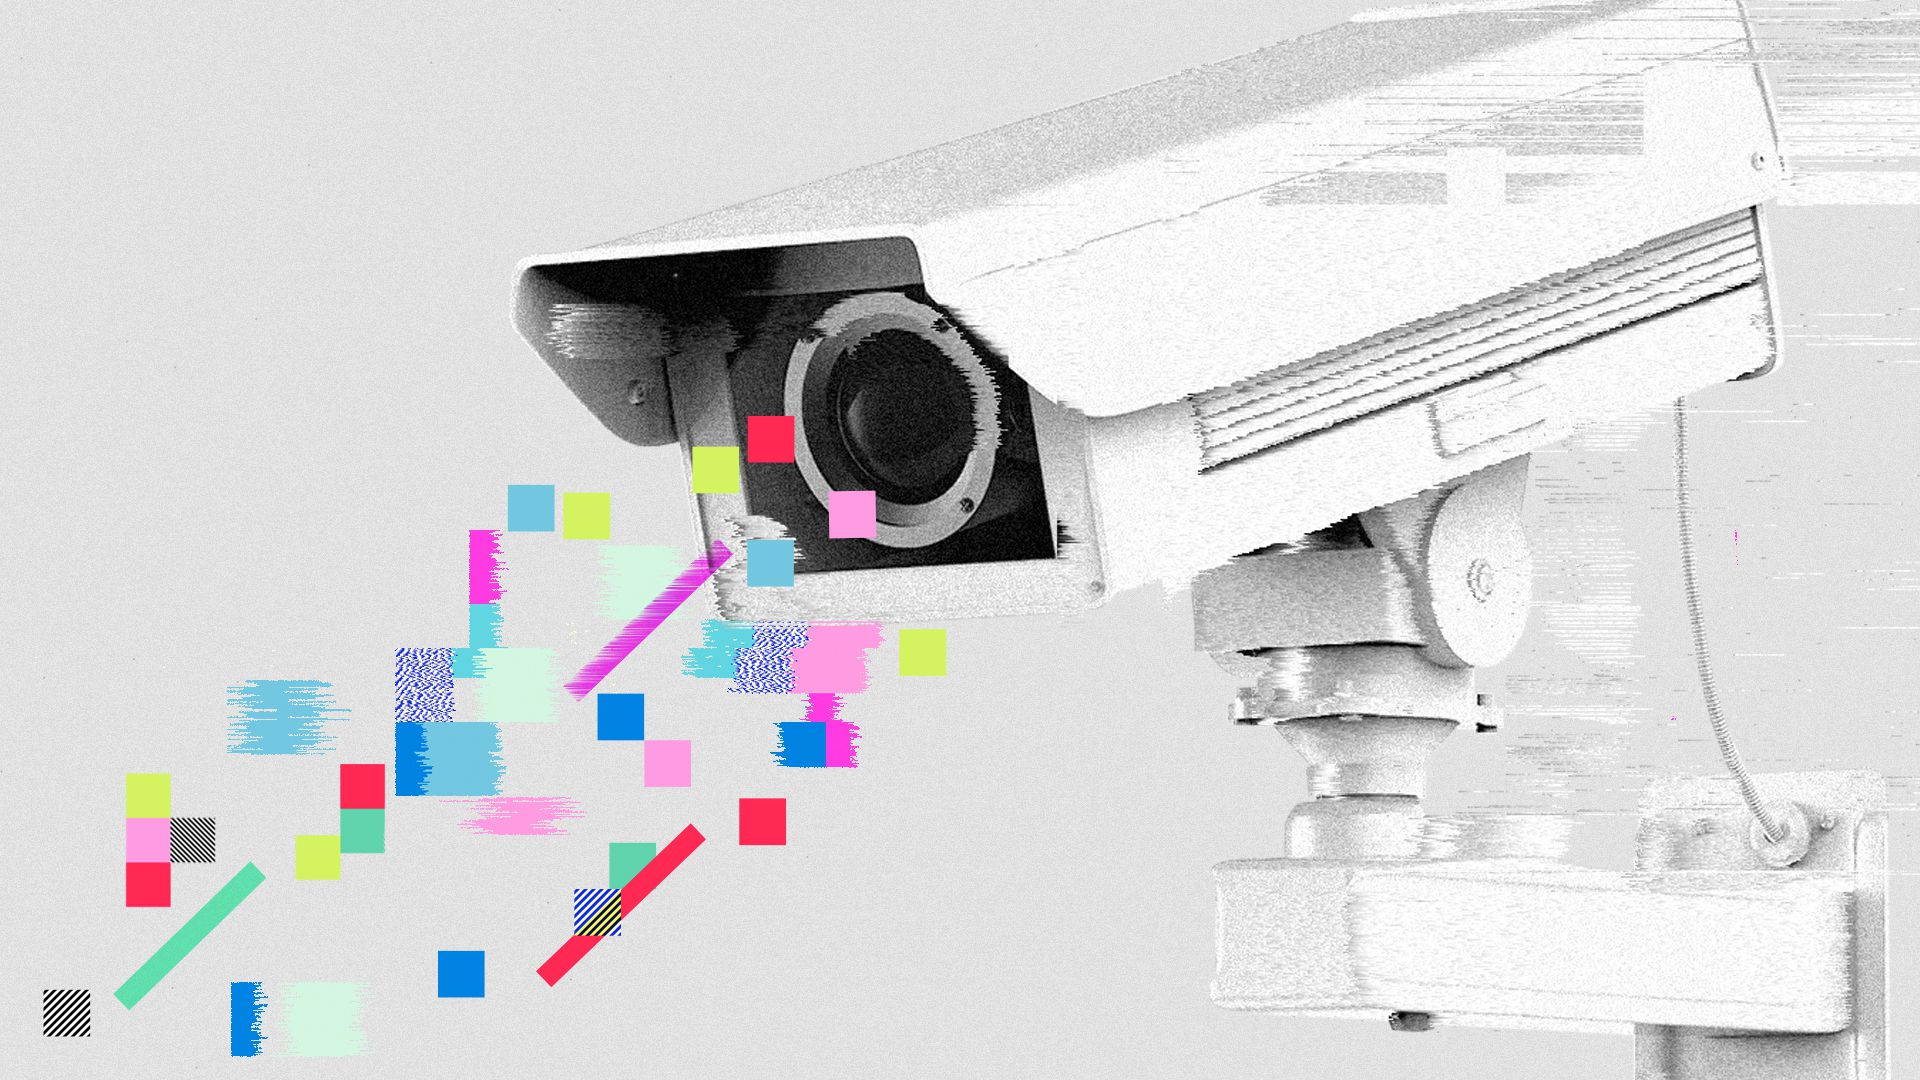 Illustration of a security camera interrupted by cubes and glitches